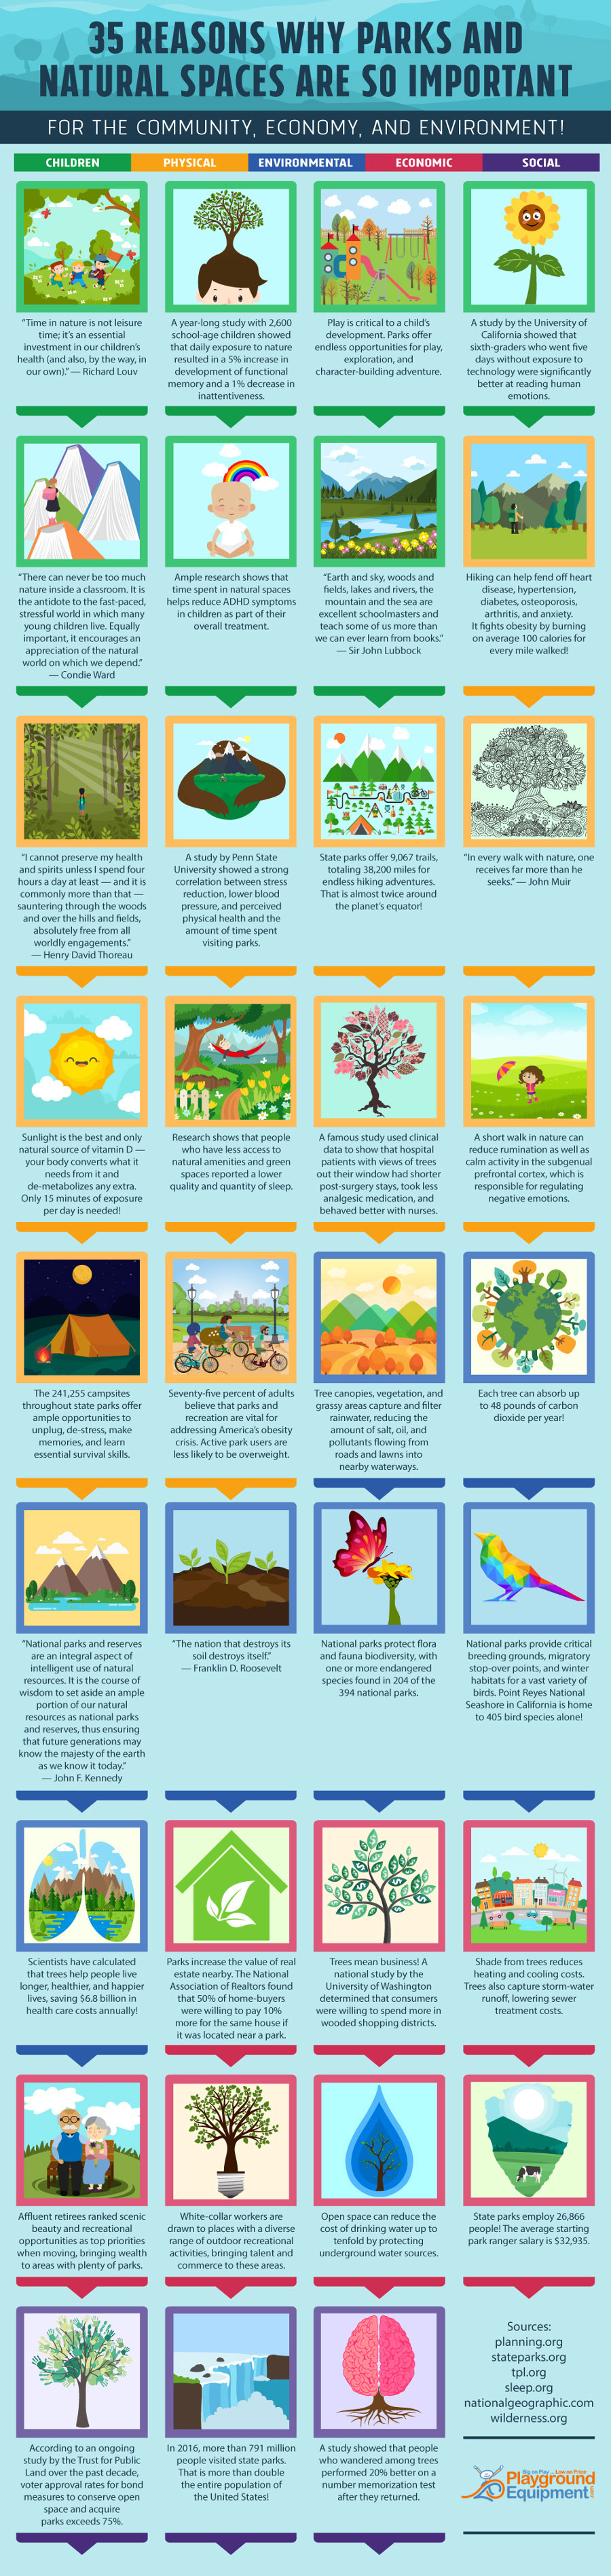 35 Reasons Why Parks and Natural Spaces Are Important